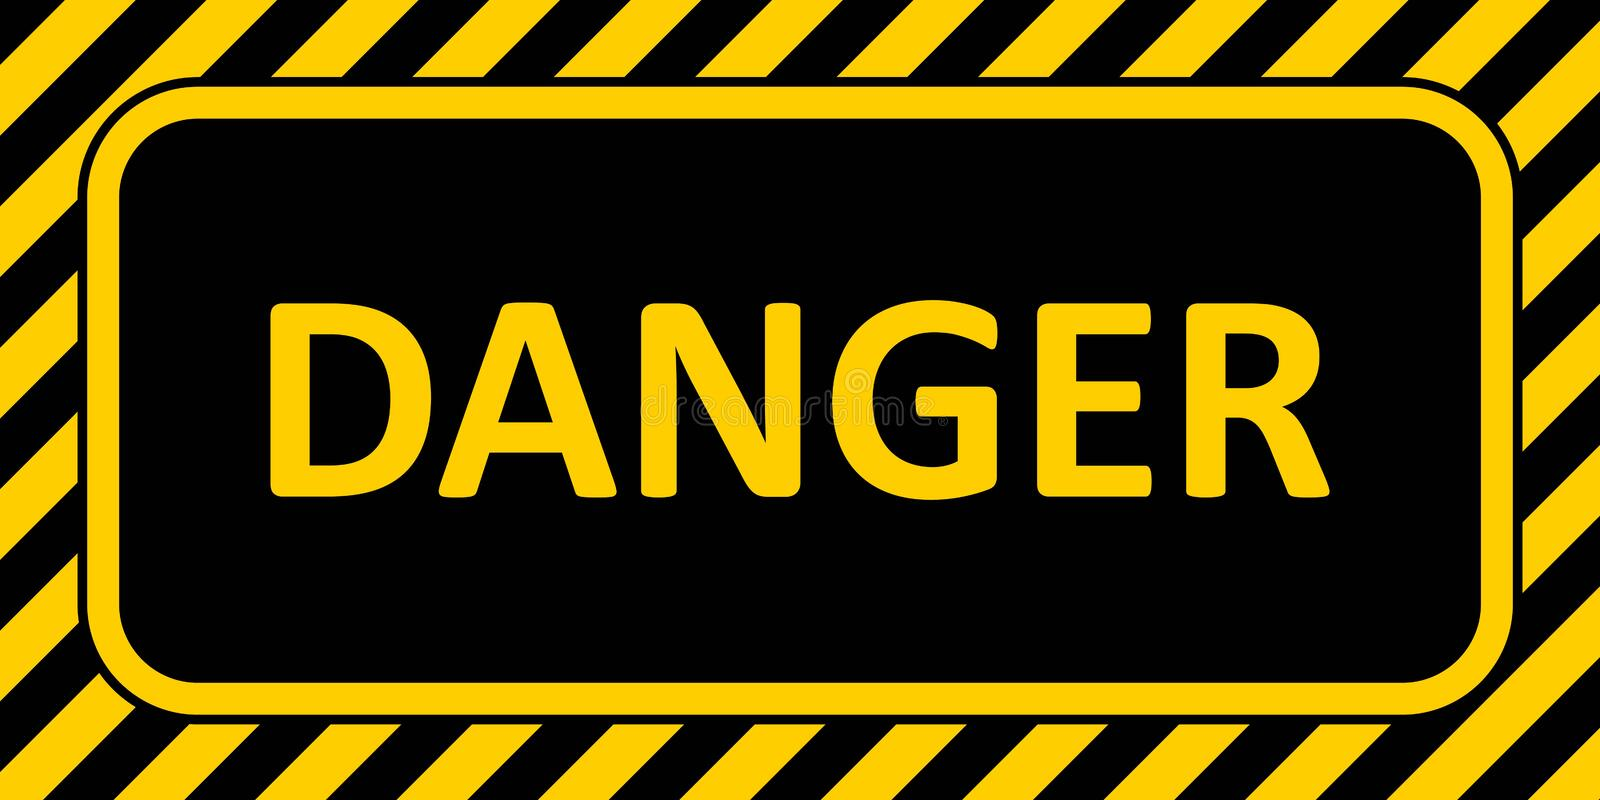 Warning Sign banner danger, with a striped frame horizontal badge text danger yellow and black color vector illustration